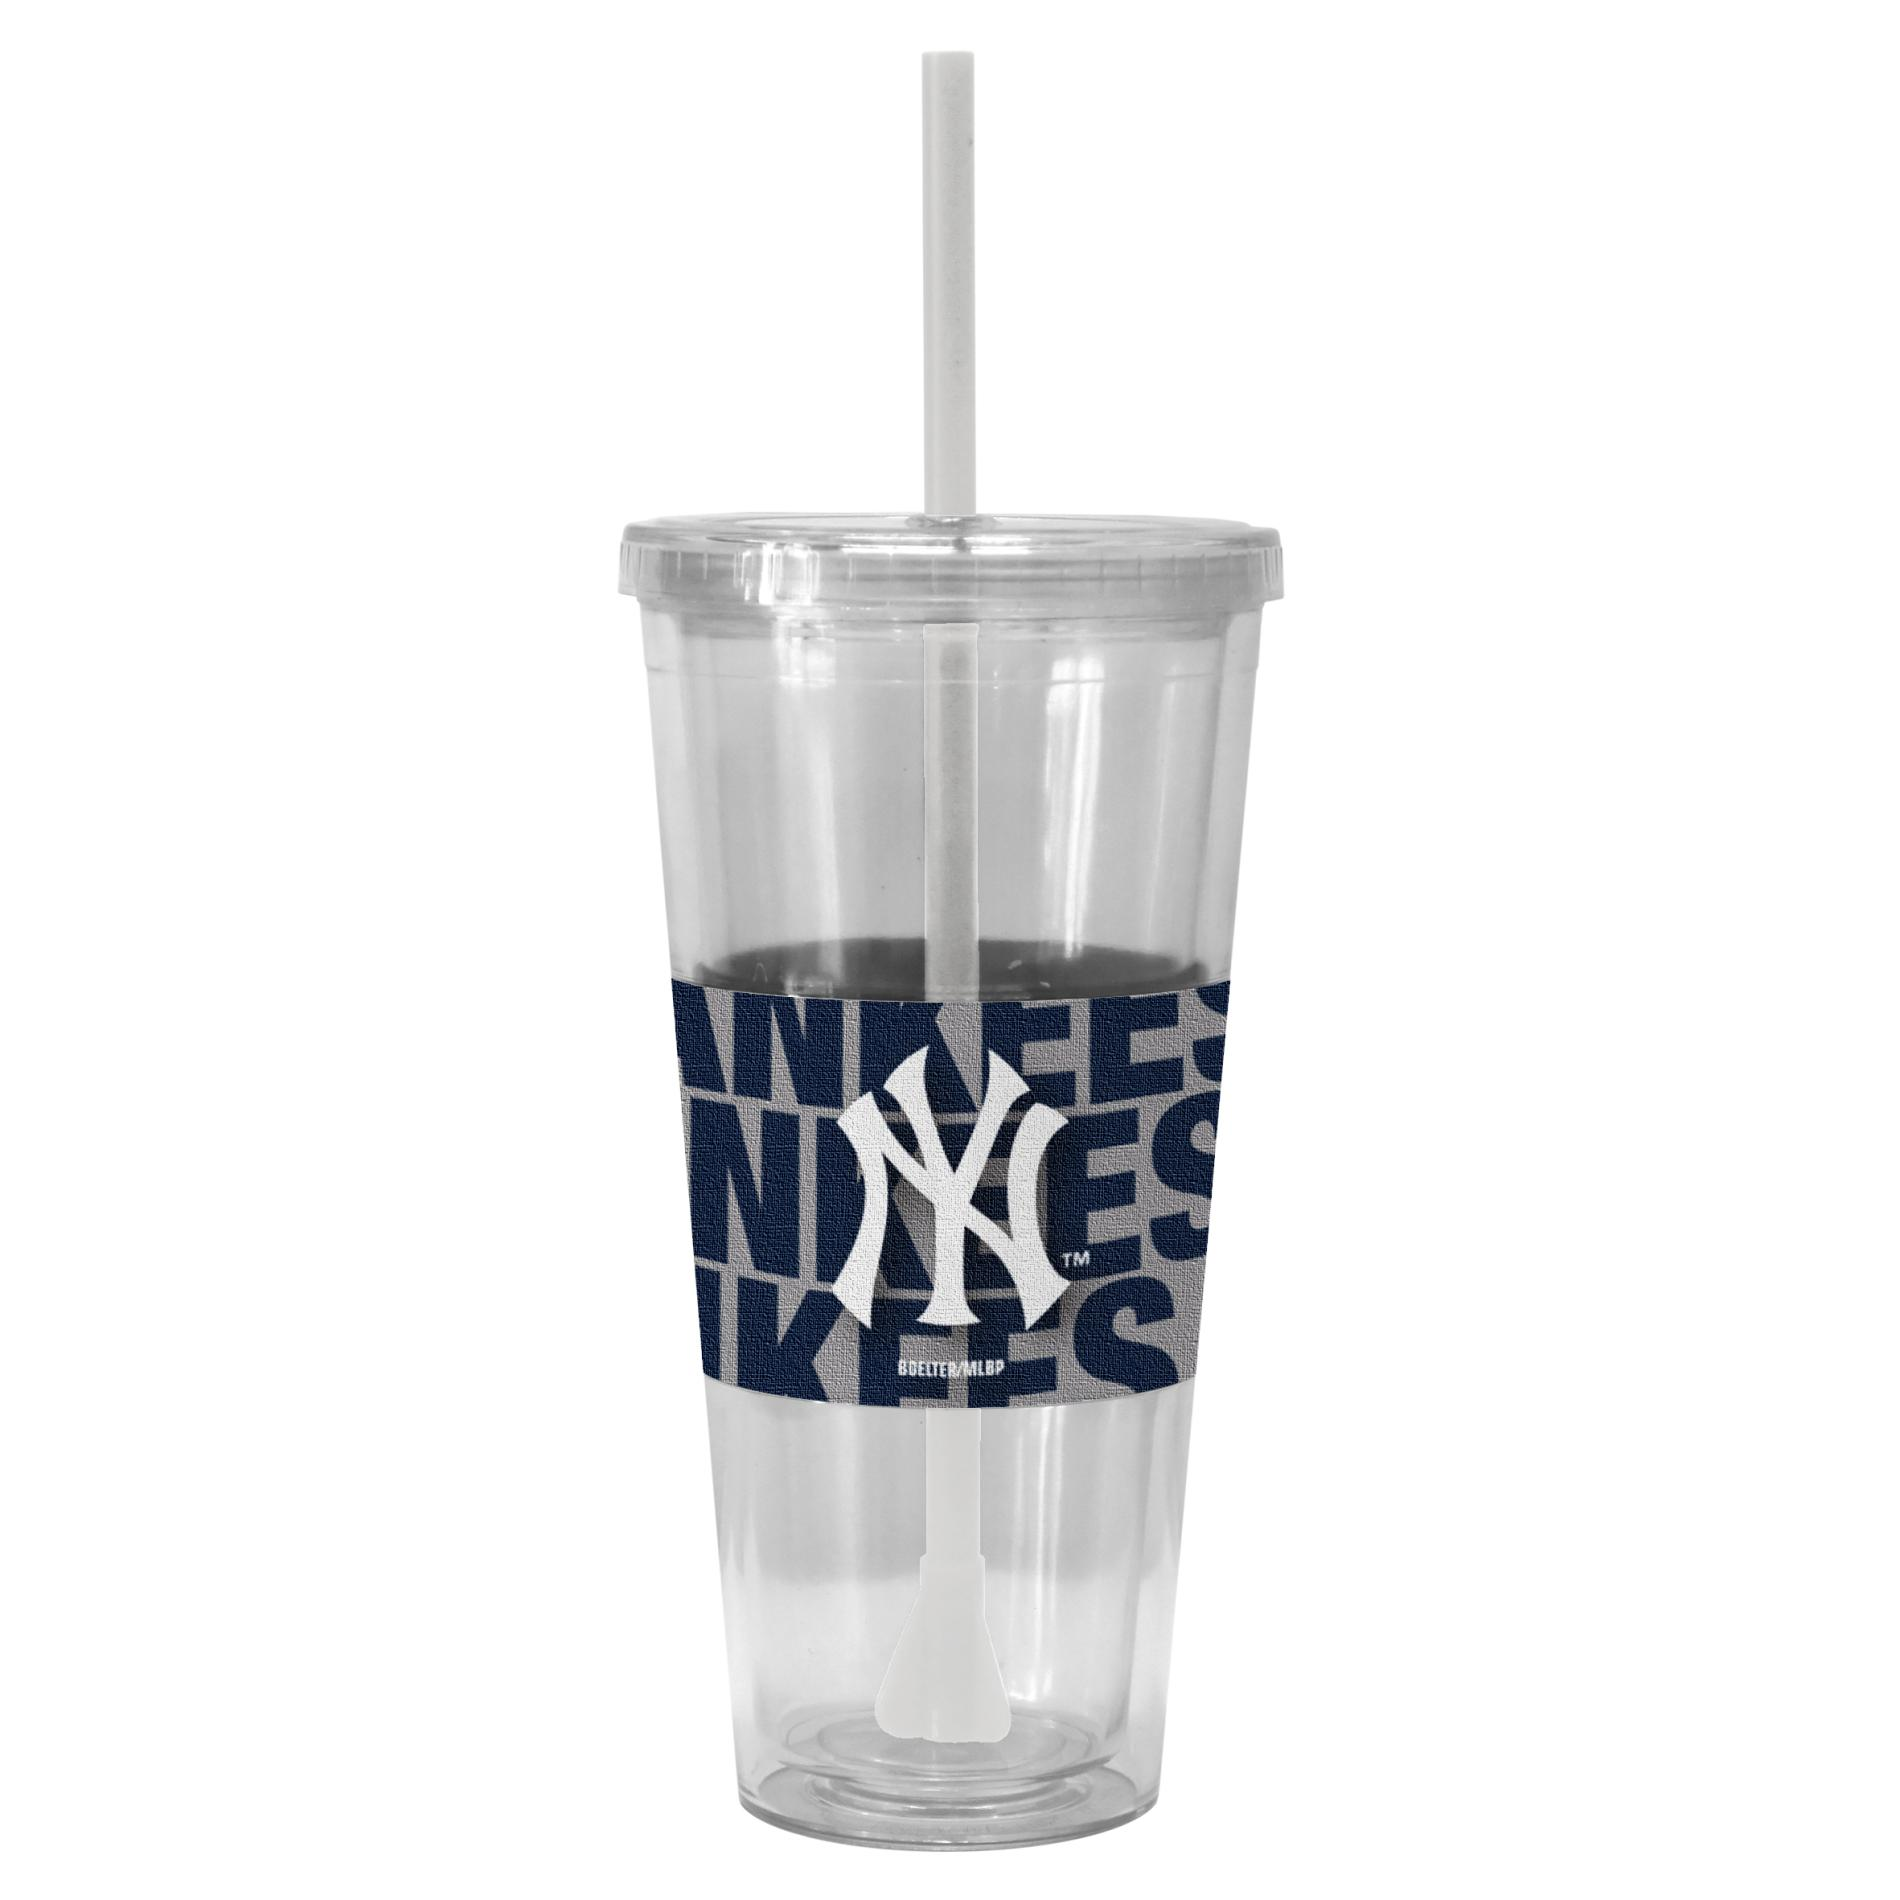 MLB Straw Cup - New York Yankees PartNumber: 046W002513310001P KsnValue: 2513310 MfgPartNumber: 318348